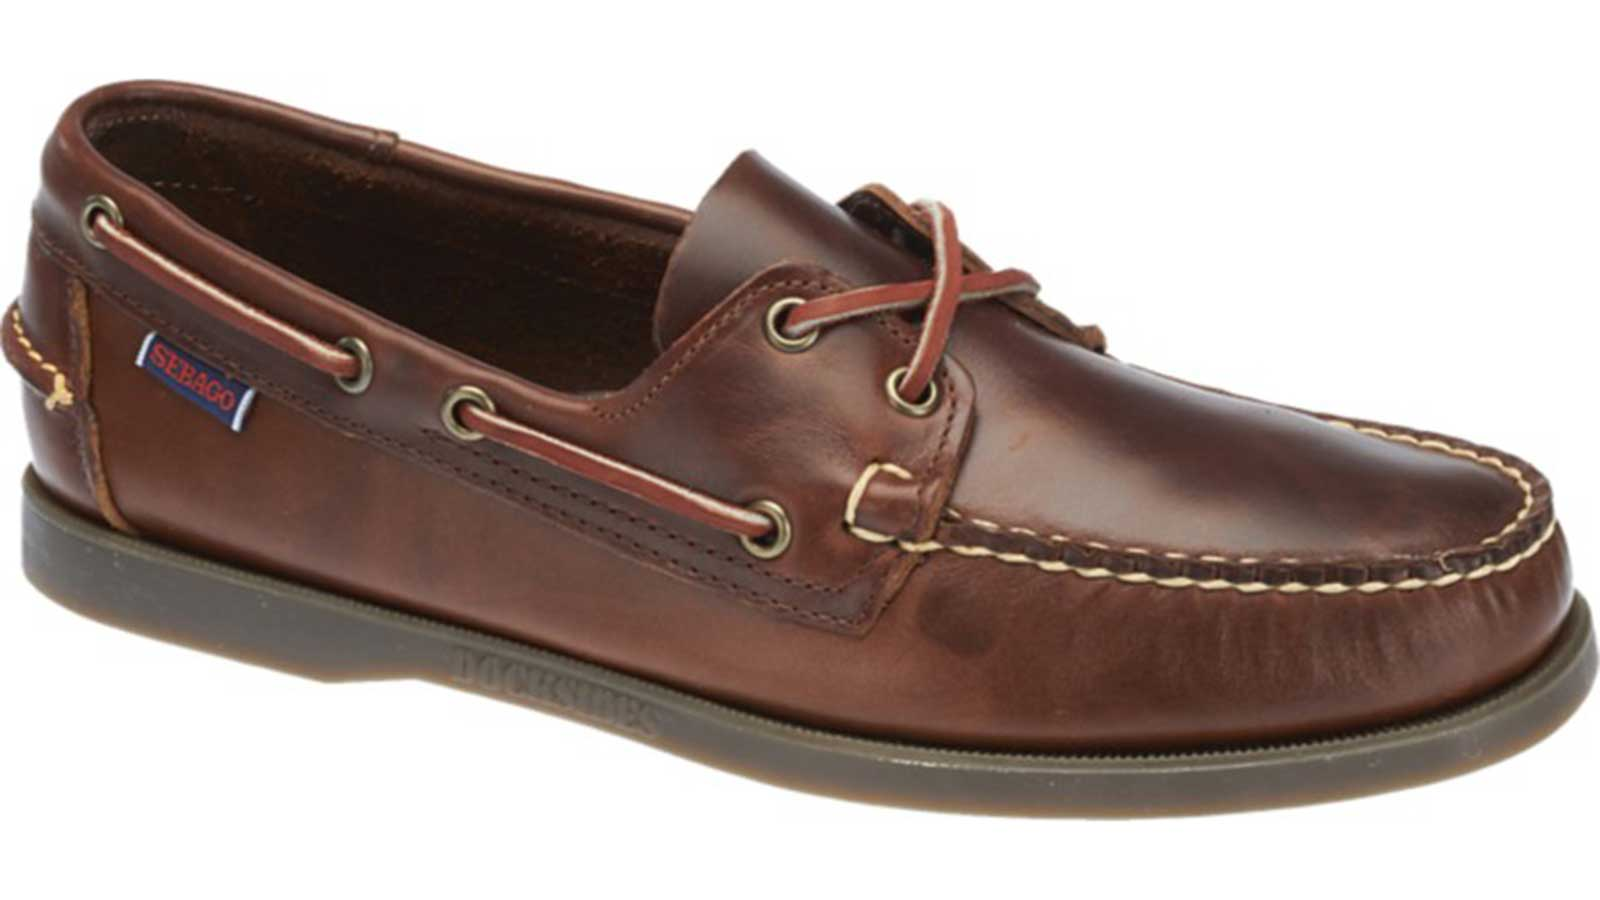 Sebago Handsewn Men's Boat Shoe | best mens boat shoes